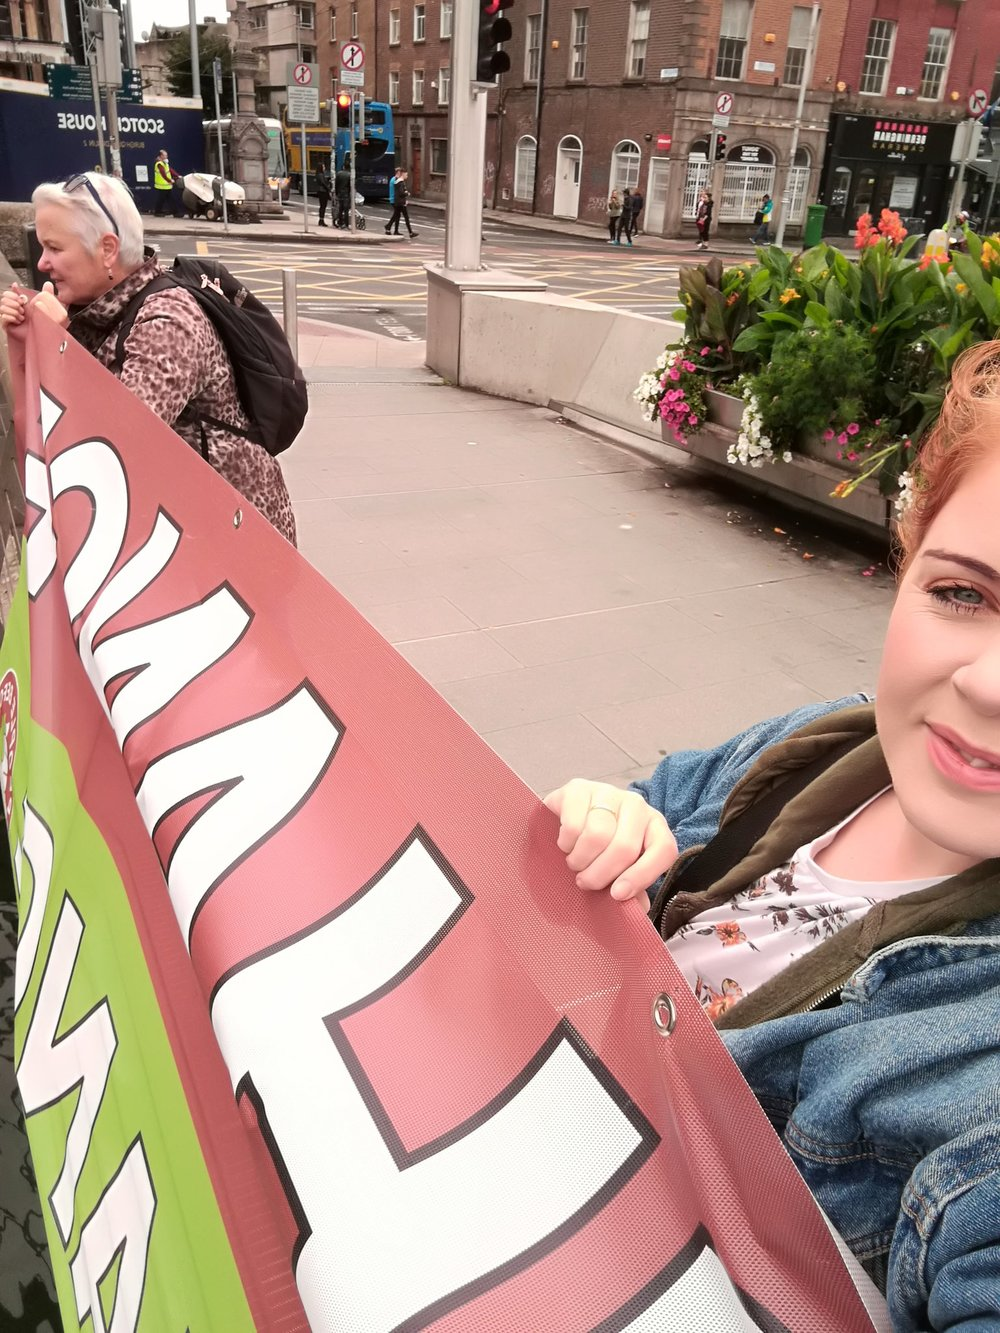 Holding the very heavy climate sign